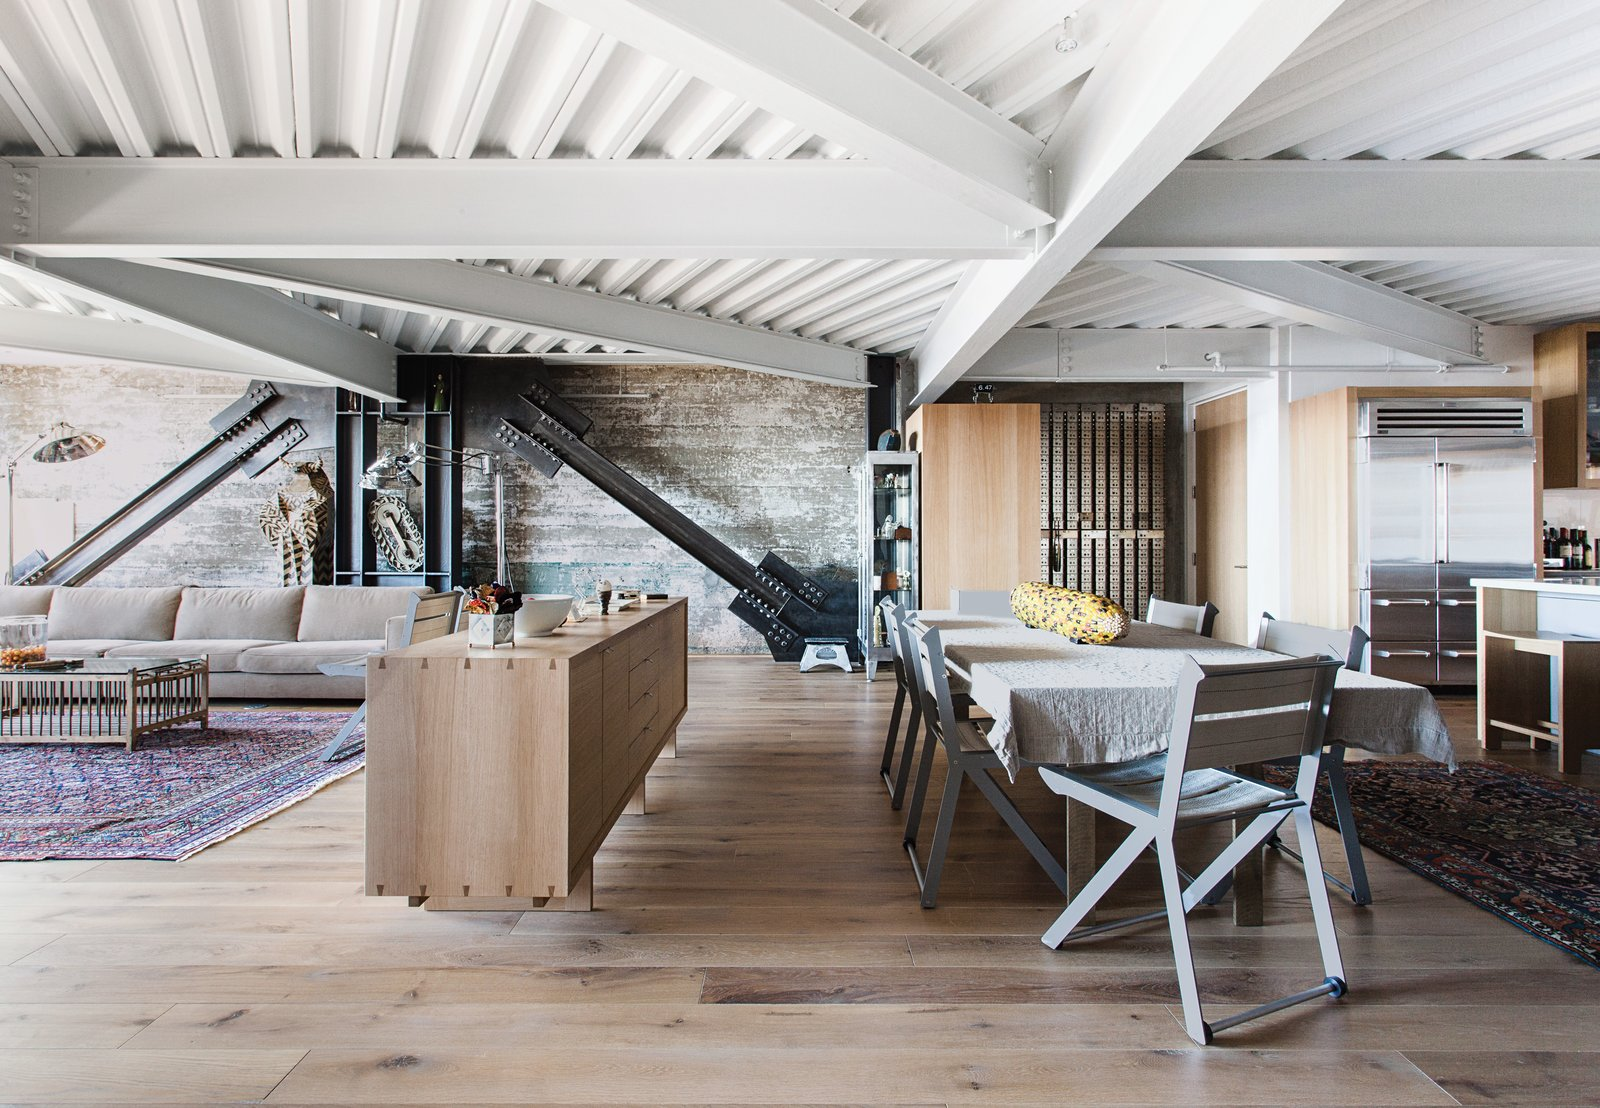 25 Homes With Exposed Wood Beams: Rustic To Modern